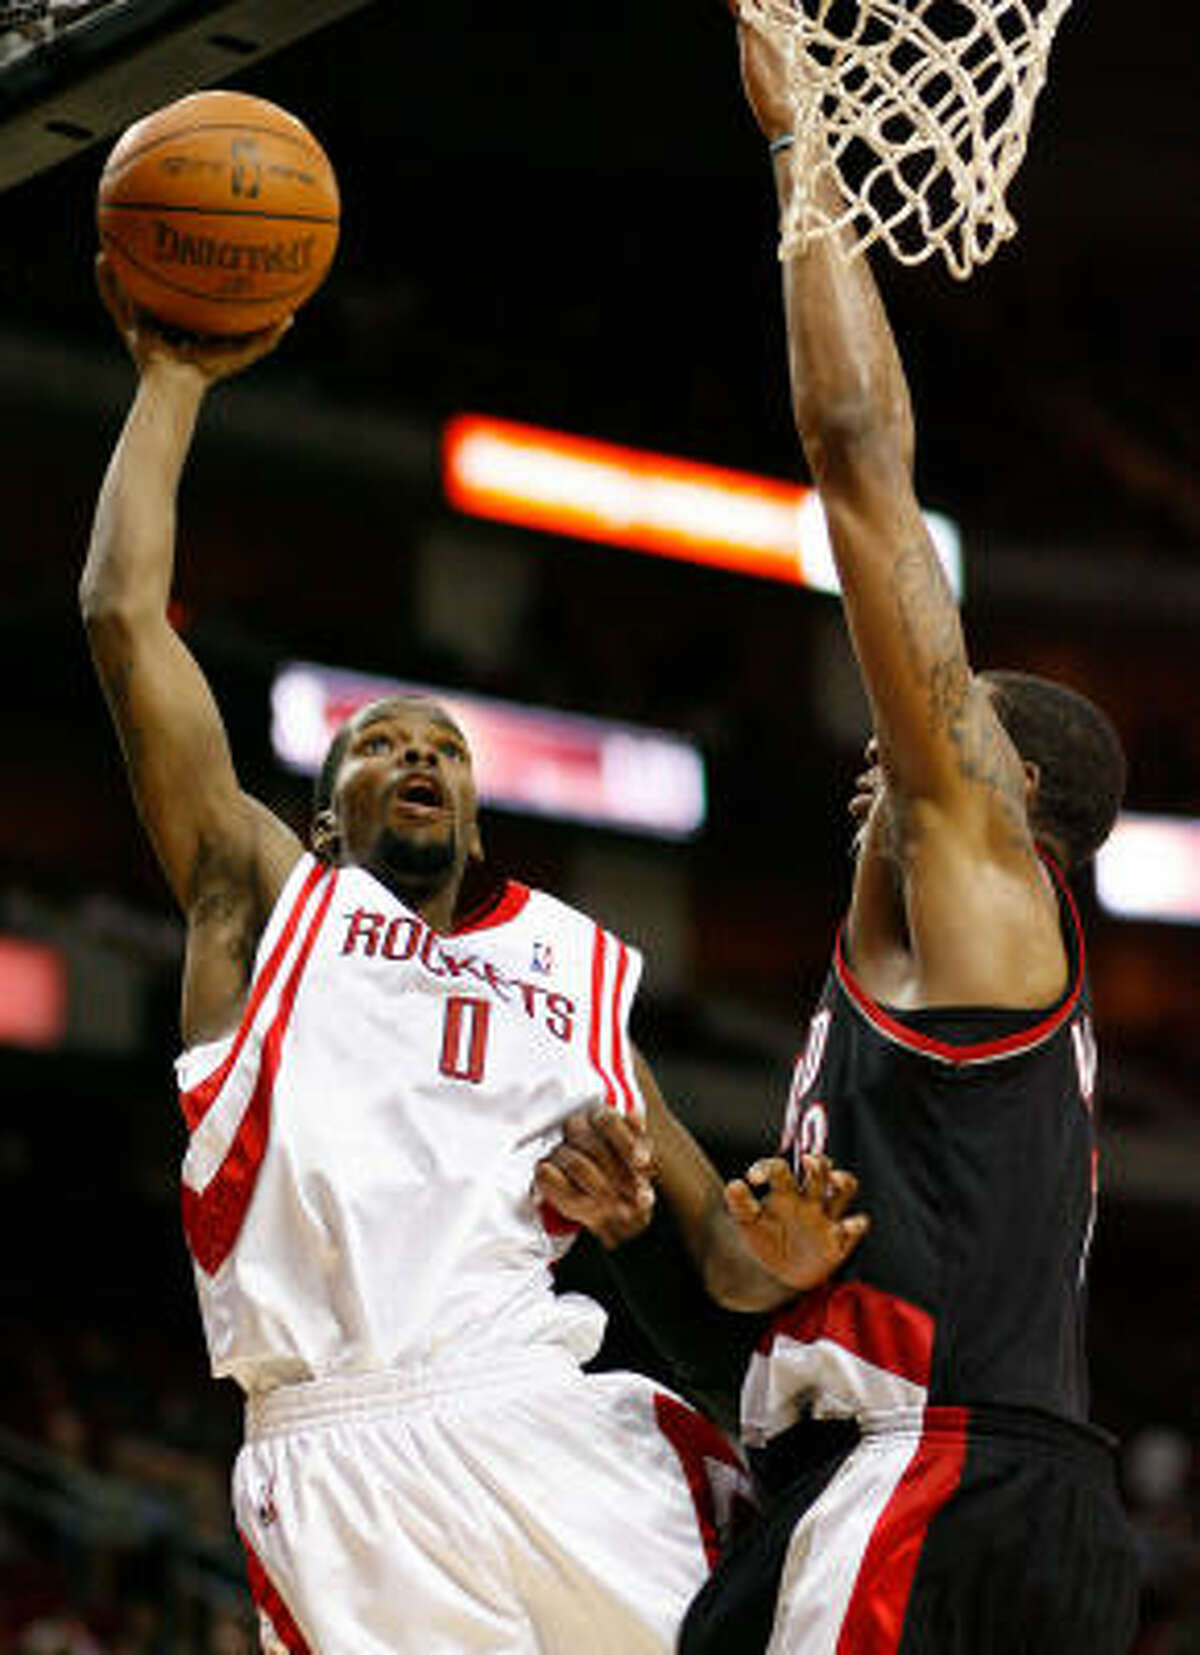 Rockets guard Aaron Brooks (0) scored a game-high 33 points to lead Houston to a 104-100 win over the Portland Trail Blazers on Friday night at Toyota Center.